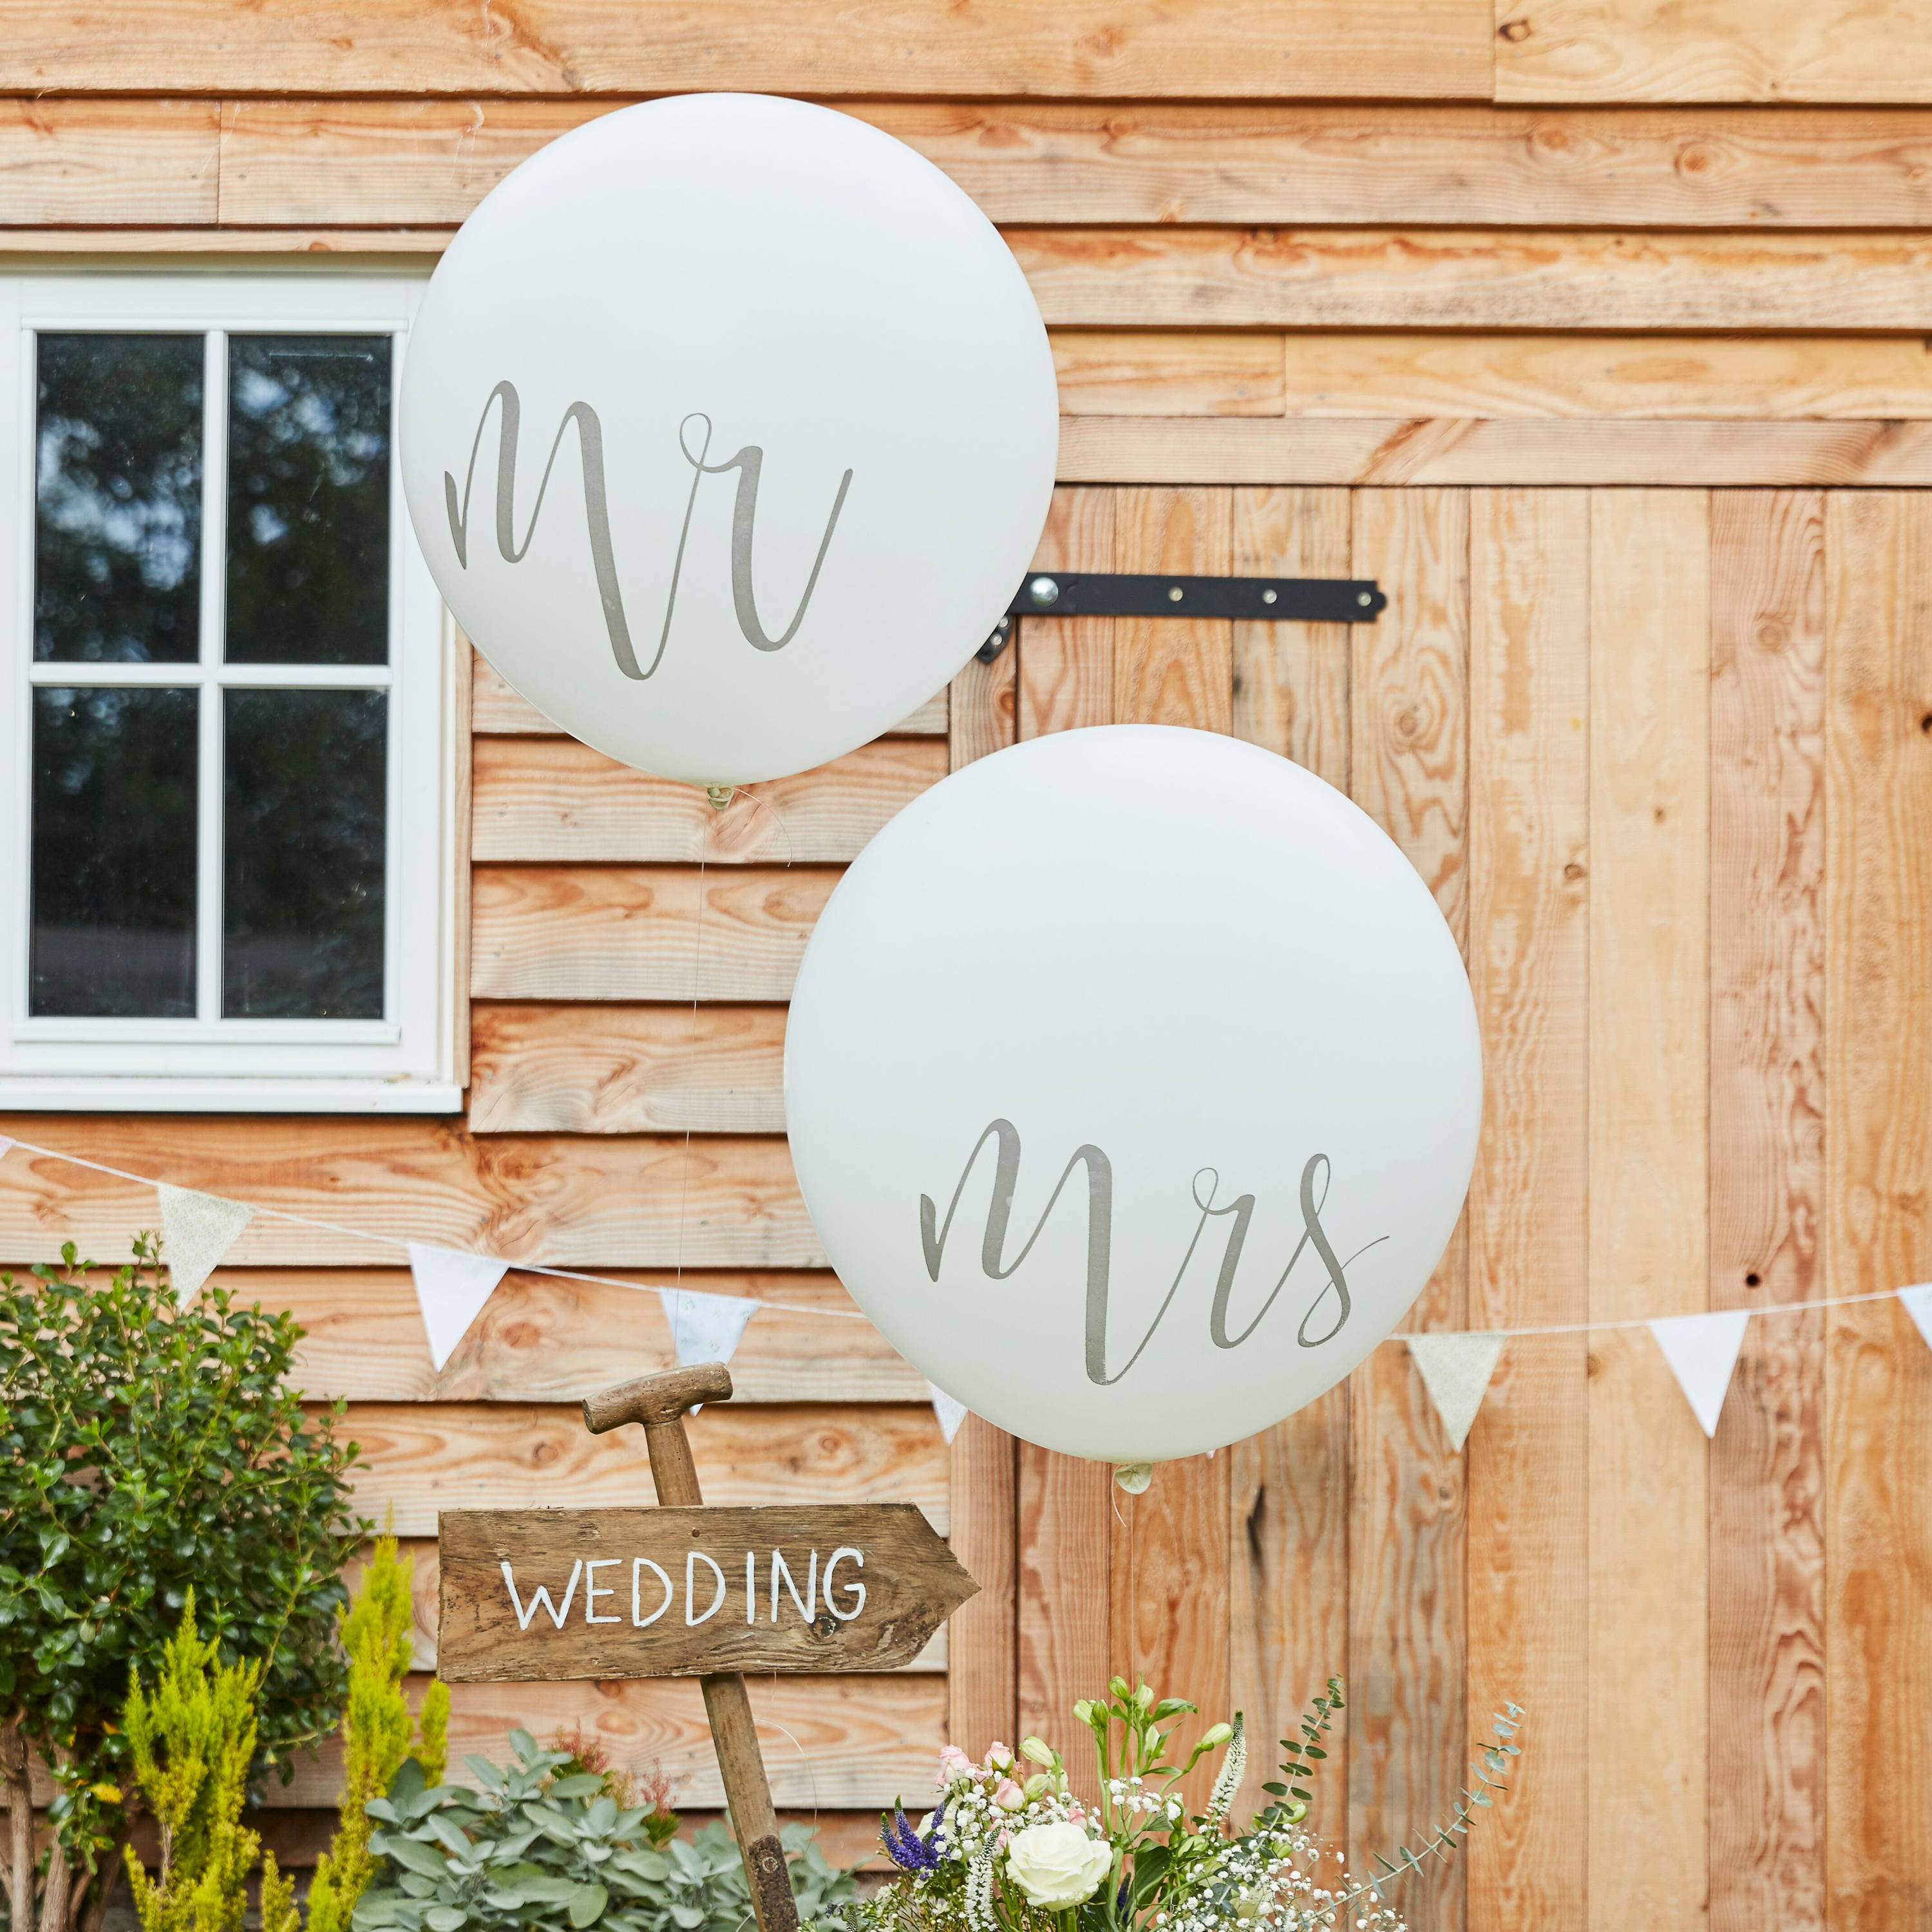 A photo of two white wedding balloons, one saying 'Mr' and one saying 'Mrs' blown up against a rustic barn wedding with white bunting and a wooden sign pointing to the wedding.